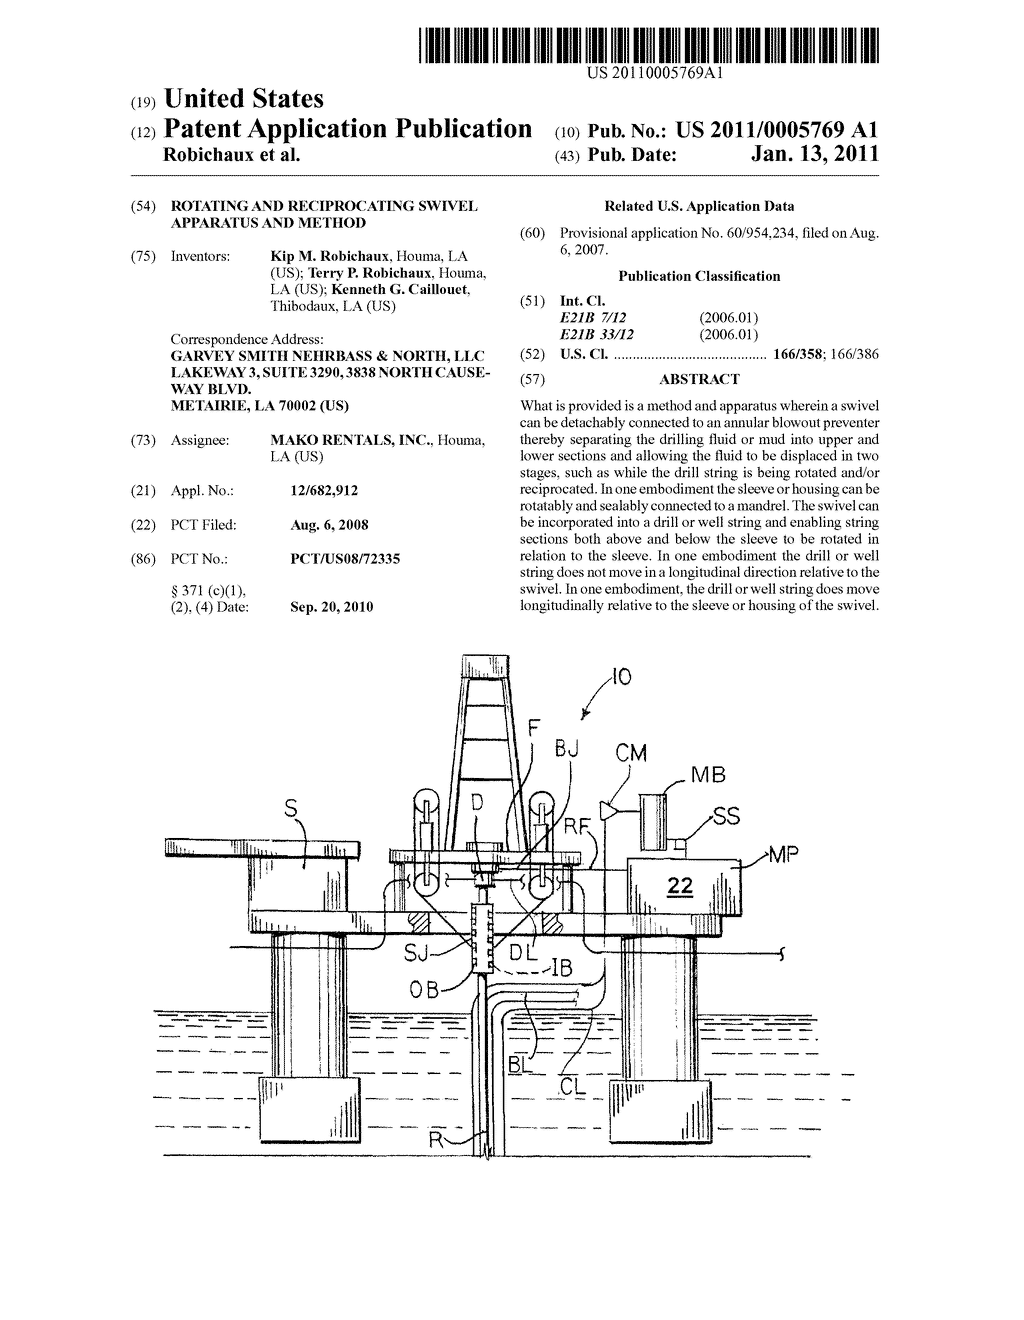 ROTATING AND RECIPROCATING SWIVEL APPARATUS AND METHOD - diagram, schematic, and image 01